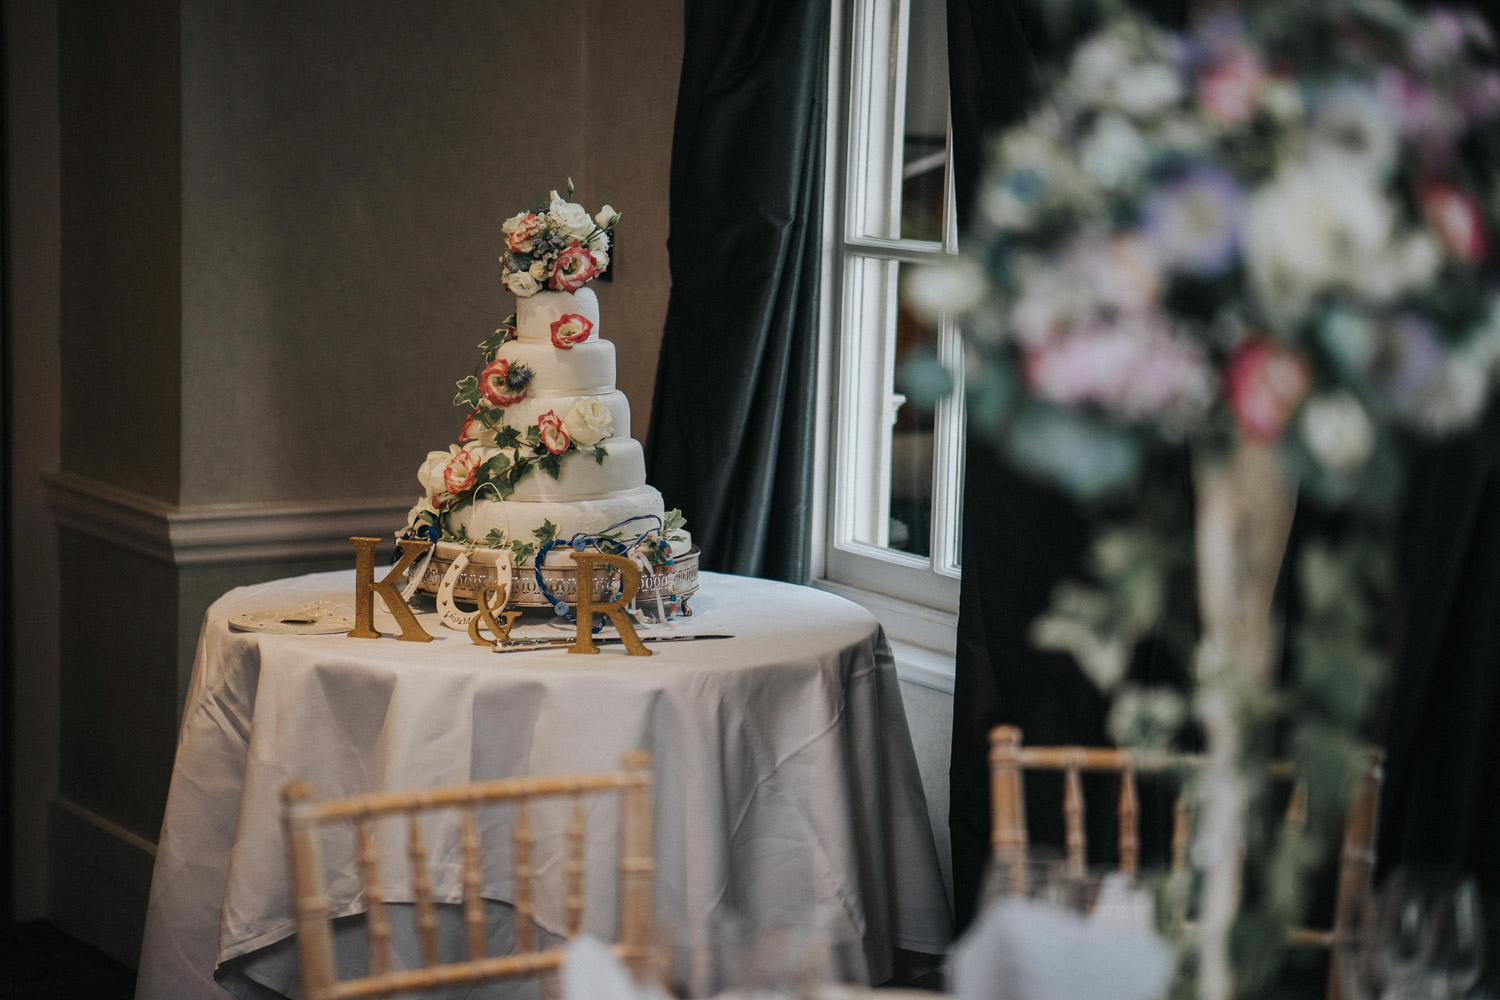 Chilston Park Hotel Wedding Cake